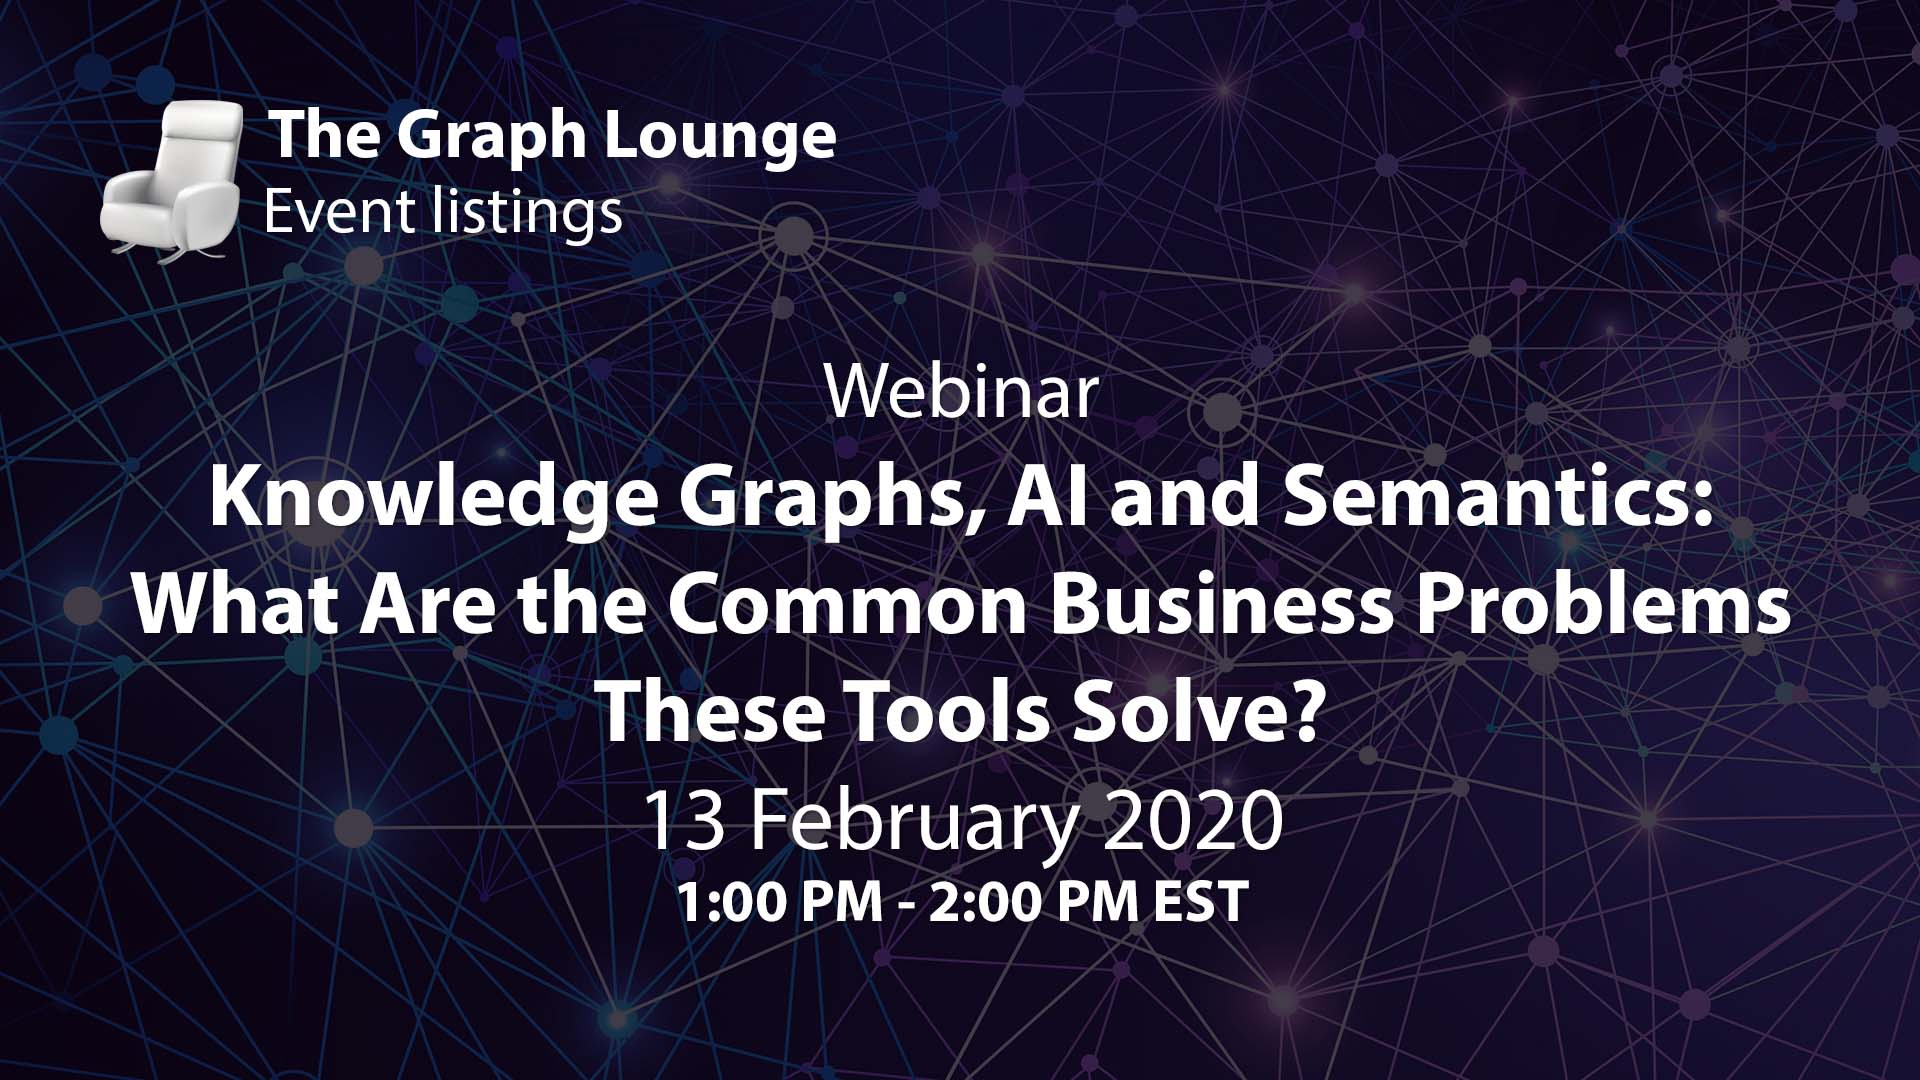 Knowledge Graphs, AI and Semantics: What Are the Common Business Problems These Tools Solve?